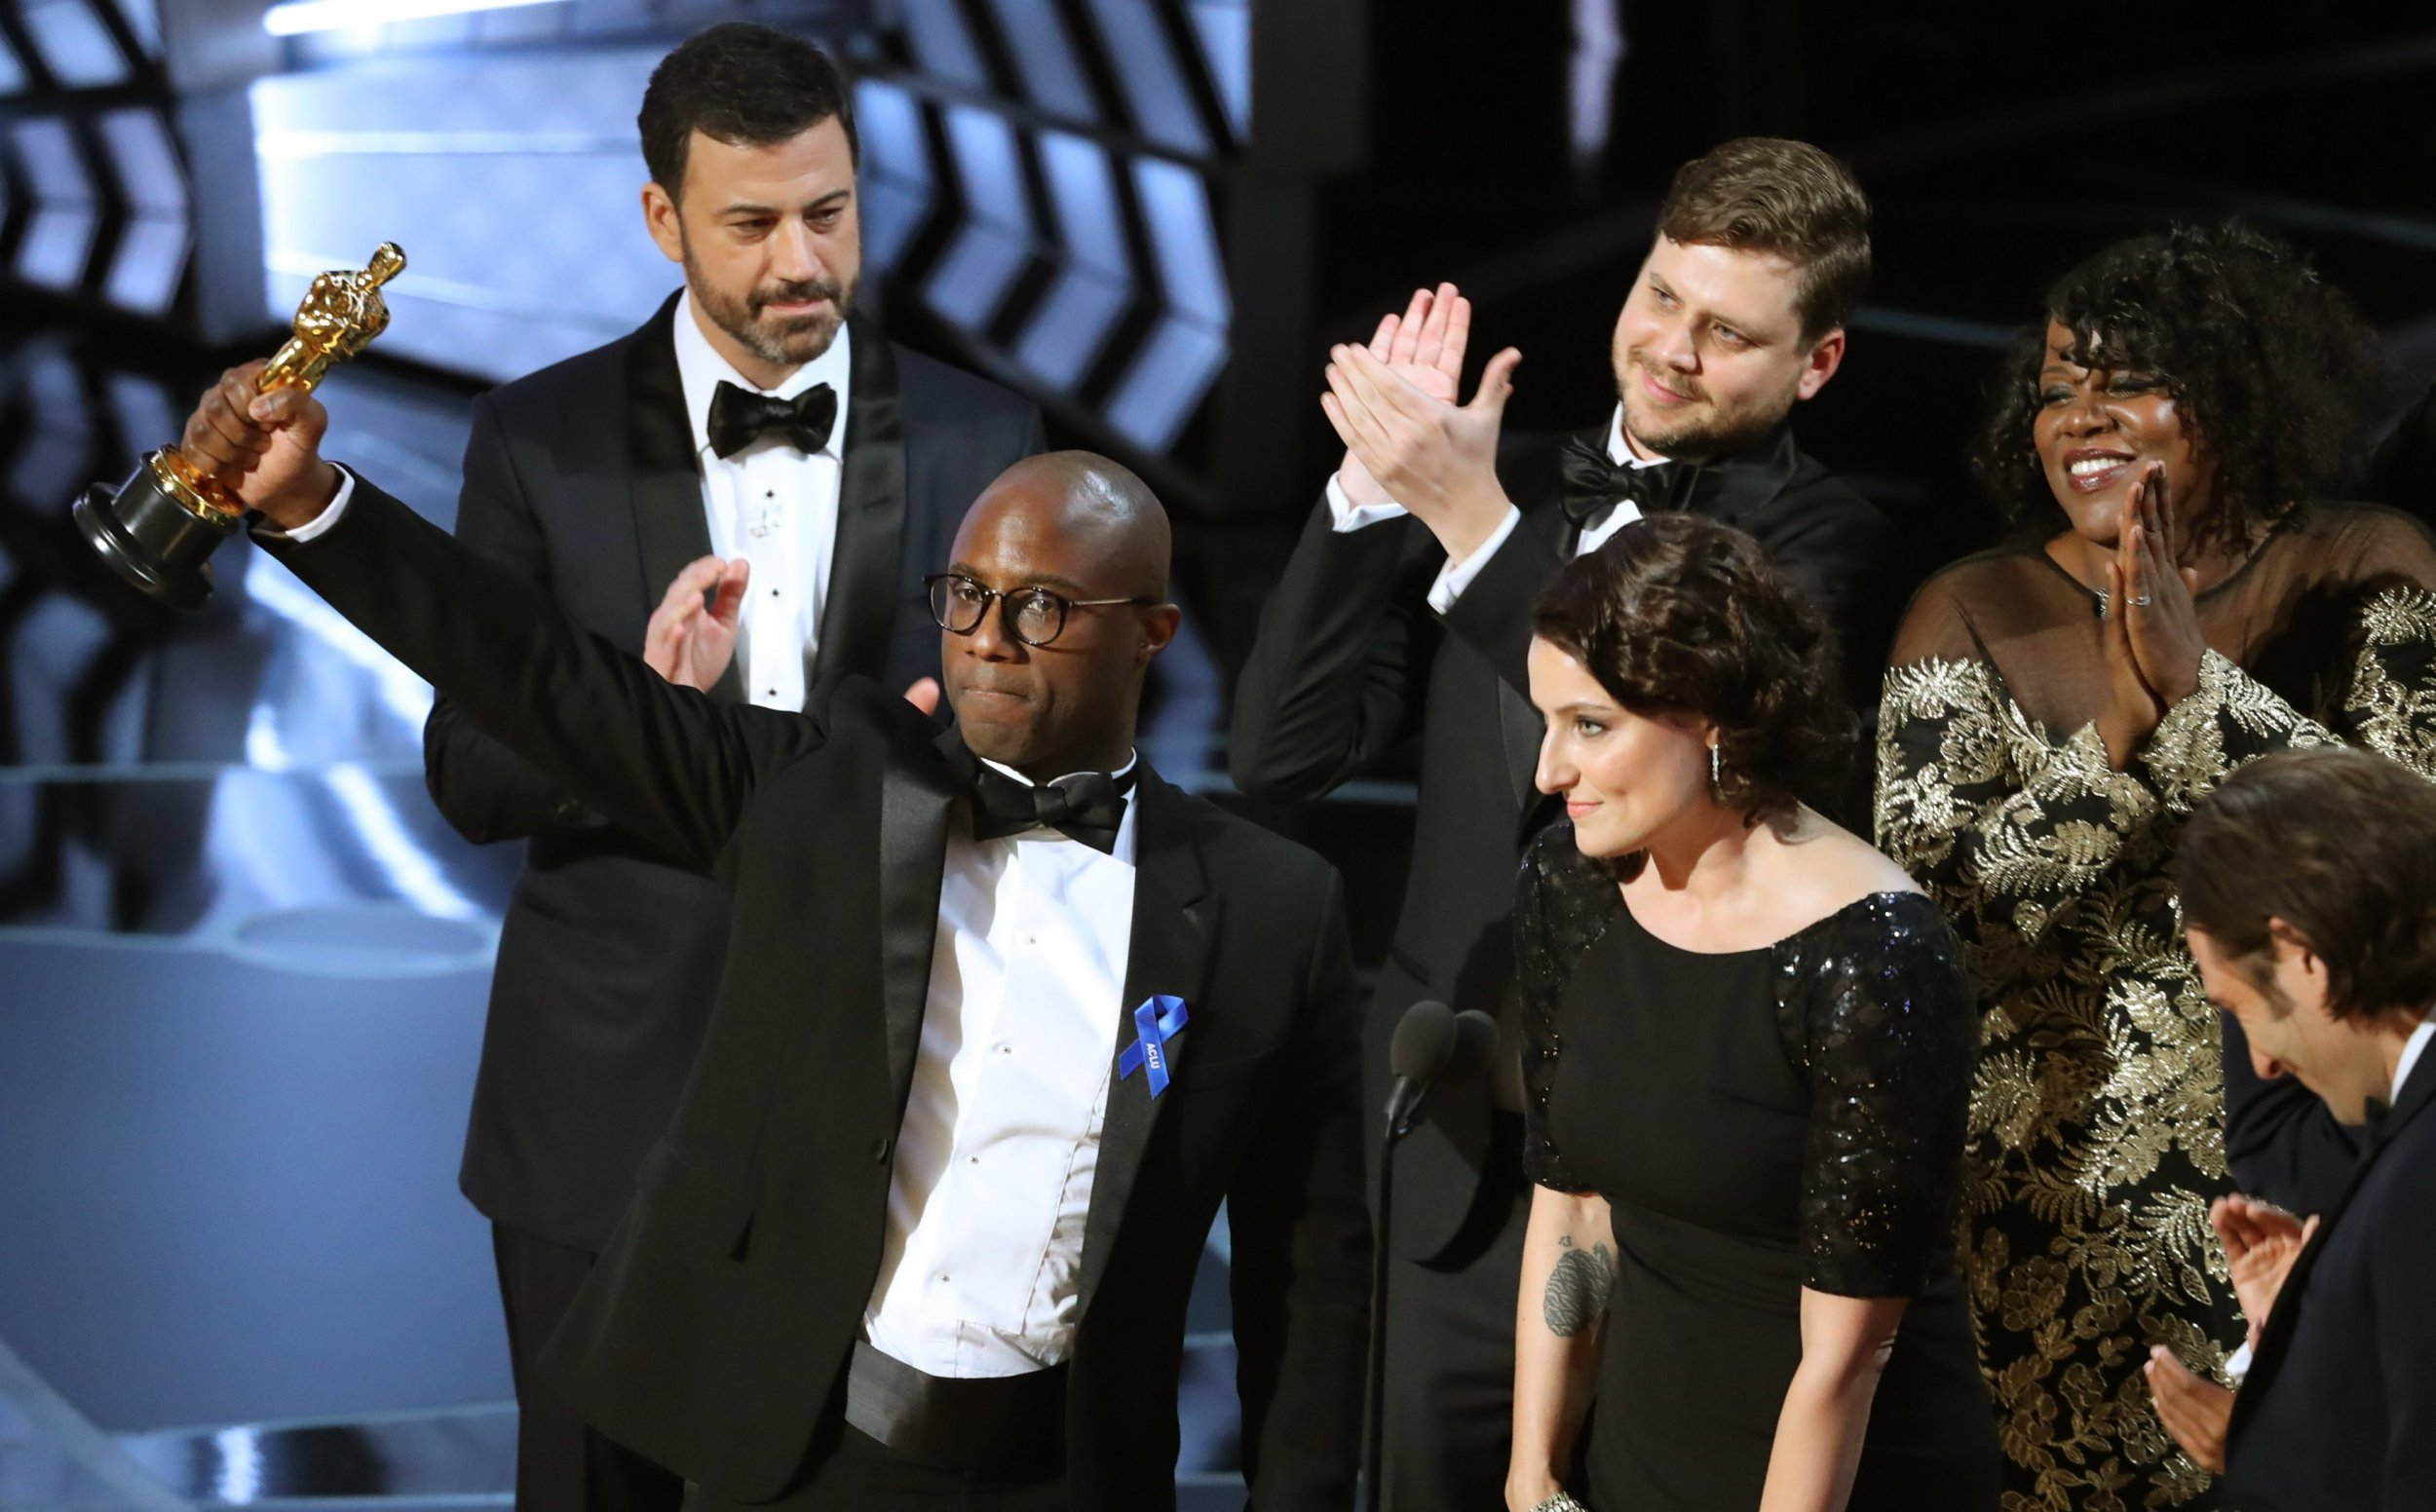 Victory for Moonlight! Shame hardly anyone knew the Oscars' Best Picture nominees